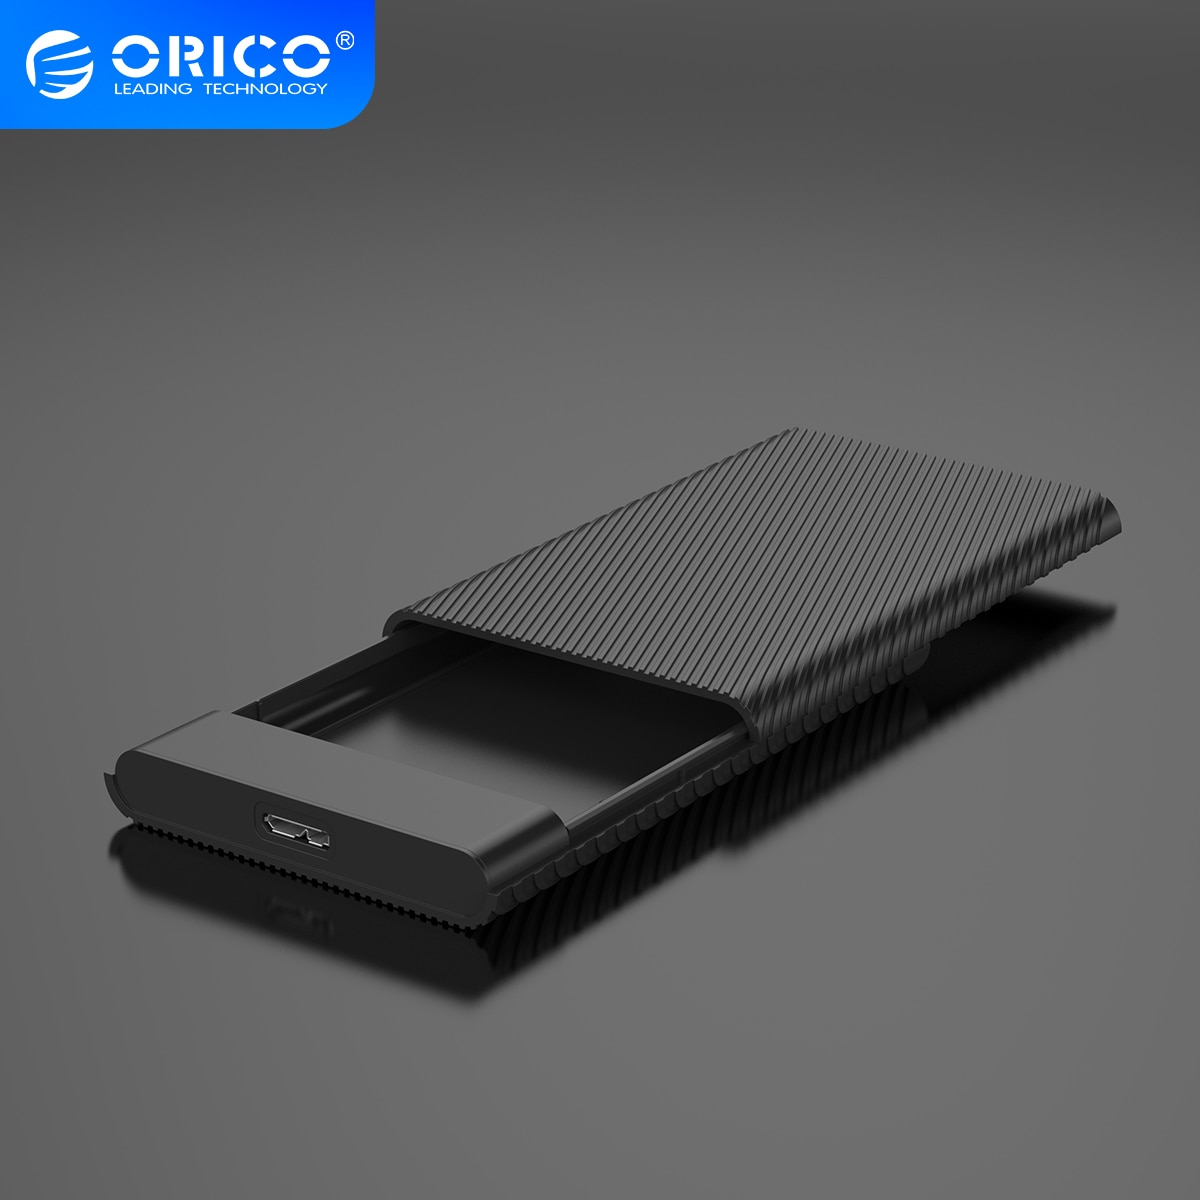 ORICO USB3.0 HDD SSD Adapter 2.5 inch Externl HDD Case 5 Gbps HDD Enclosure with Auto Sleep UASP Fun